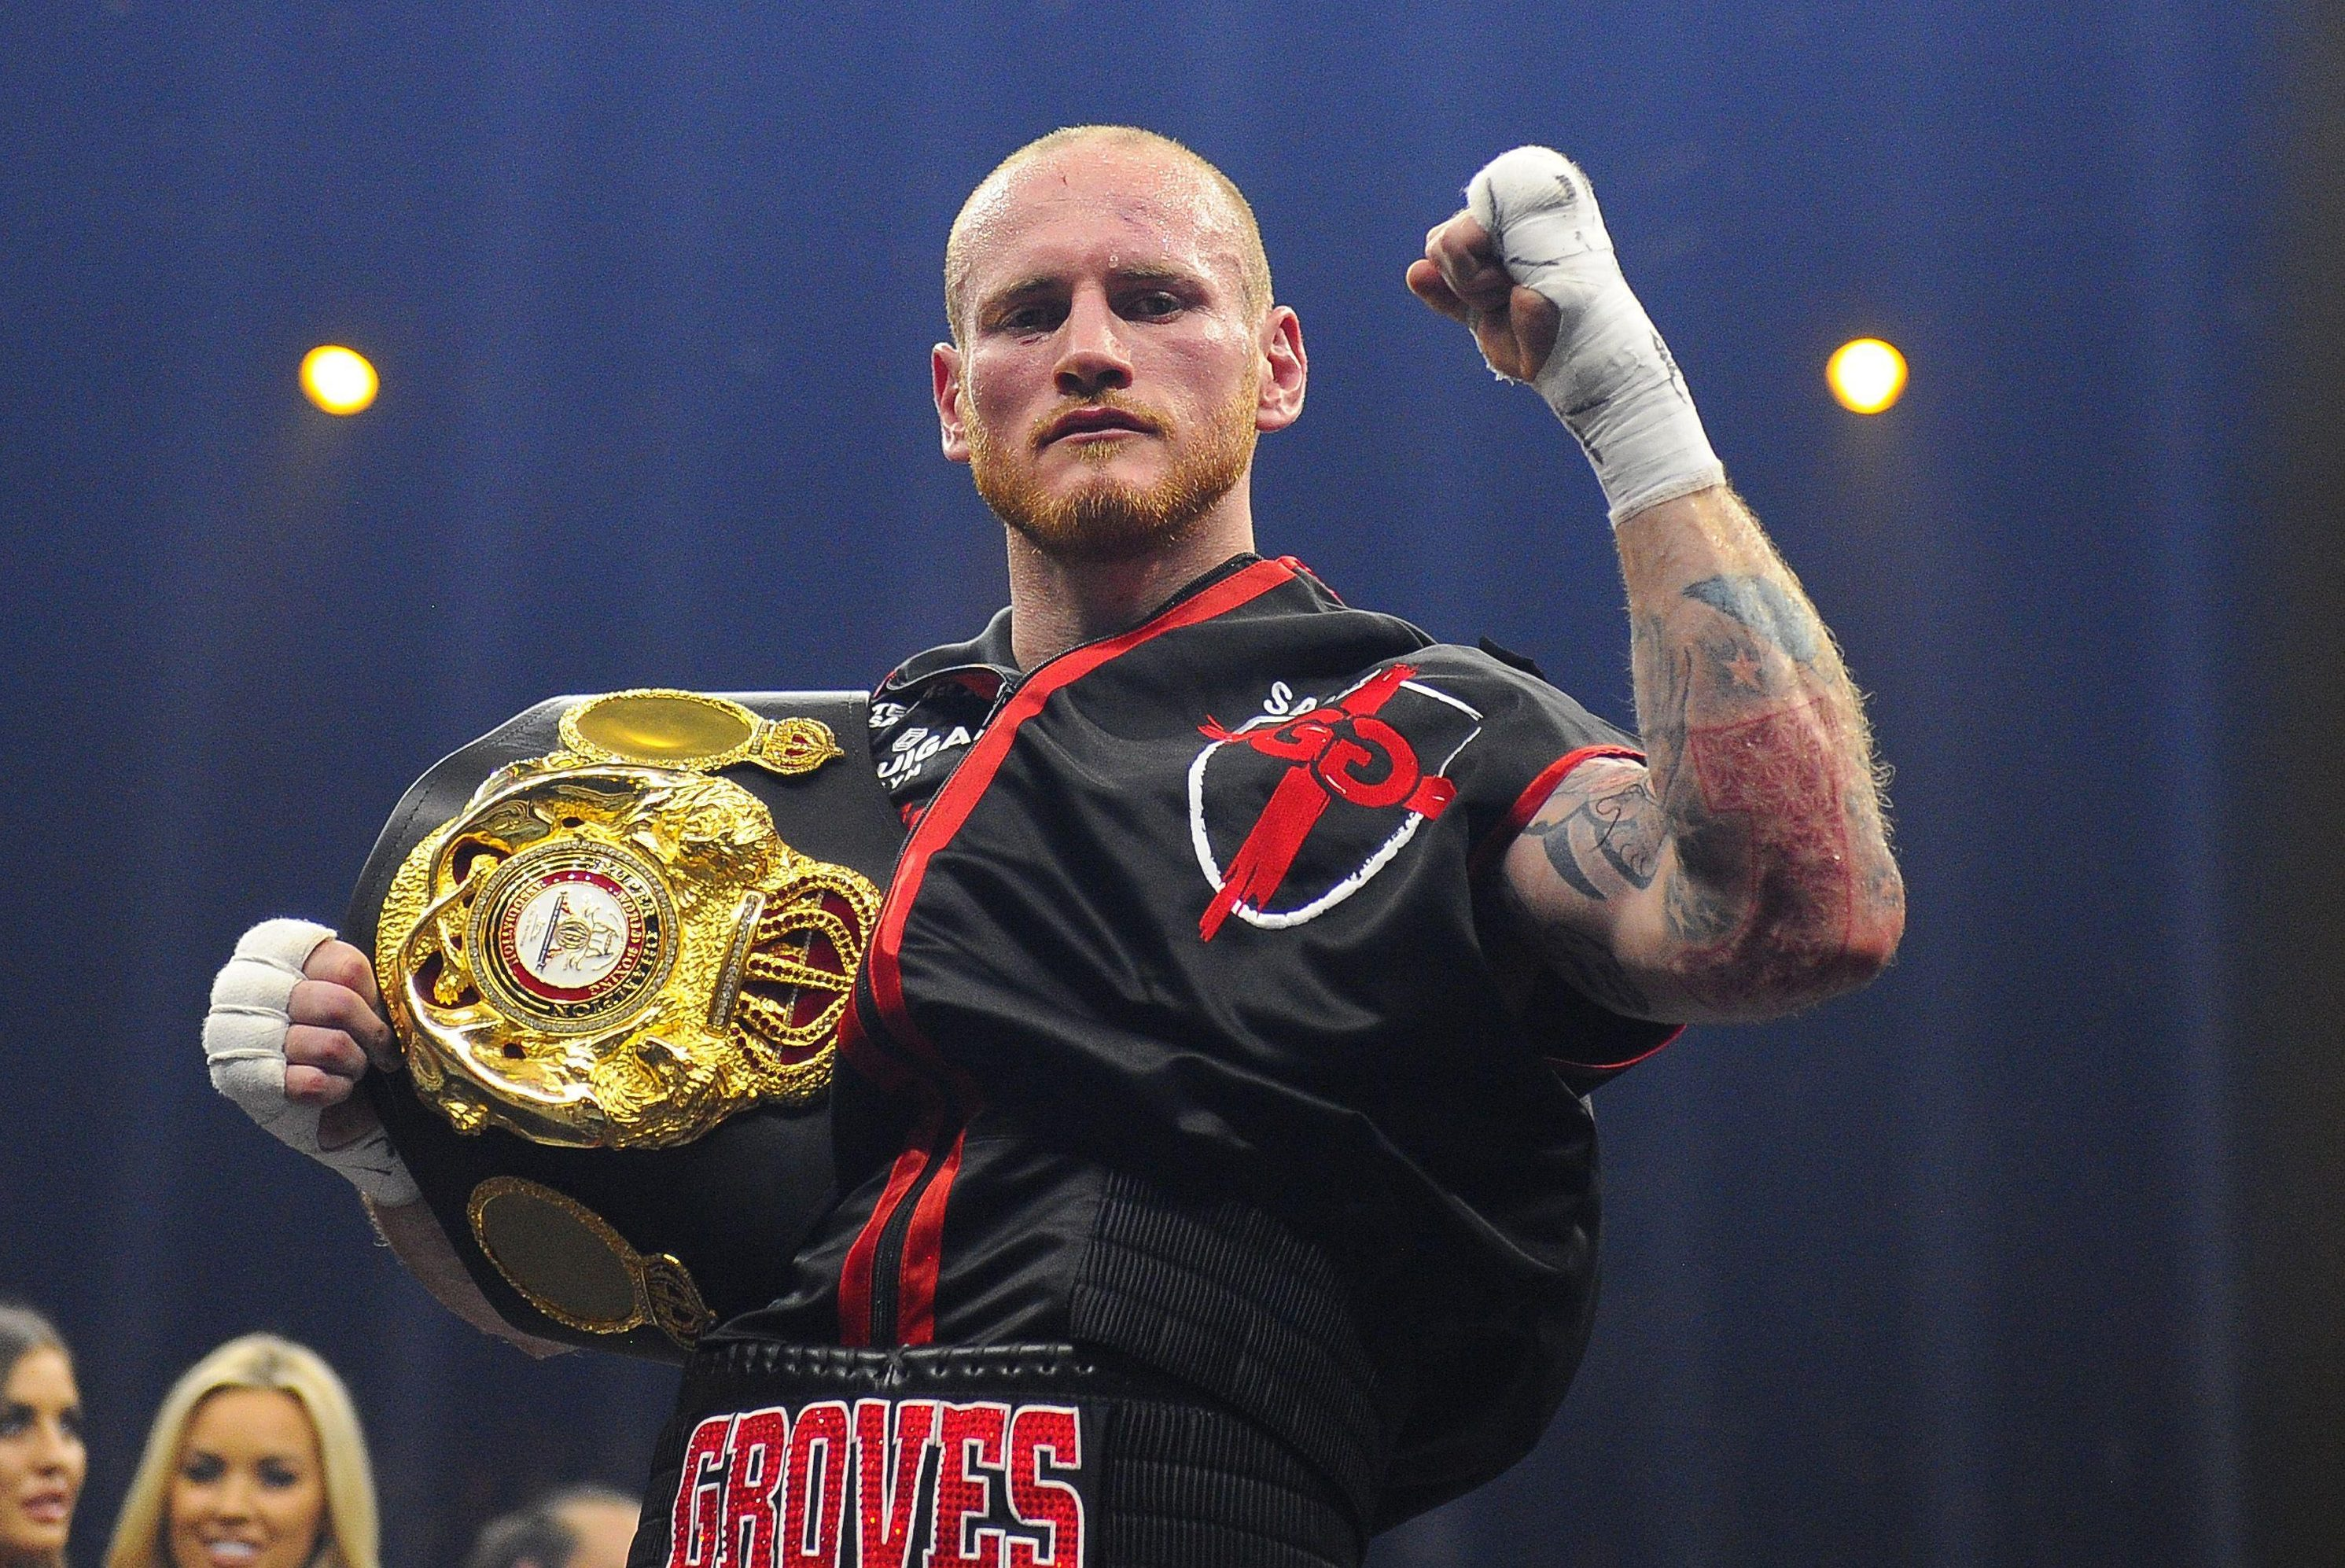 Groves will be defending his WBO title at Saturday's clash